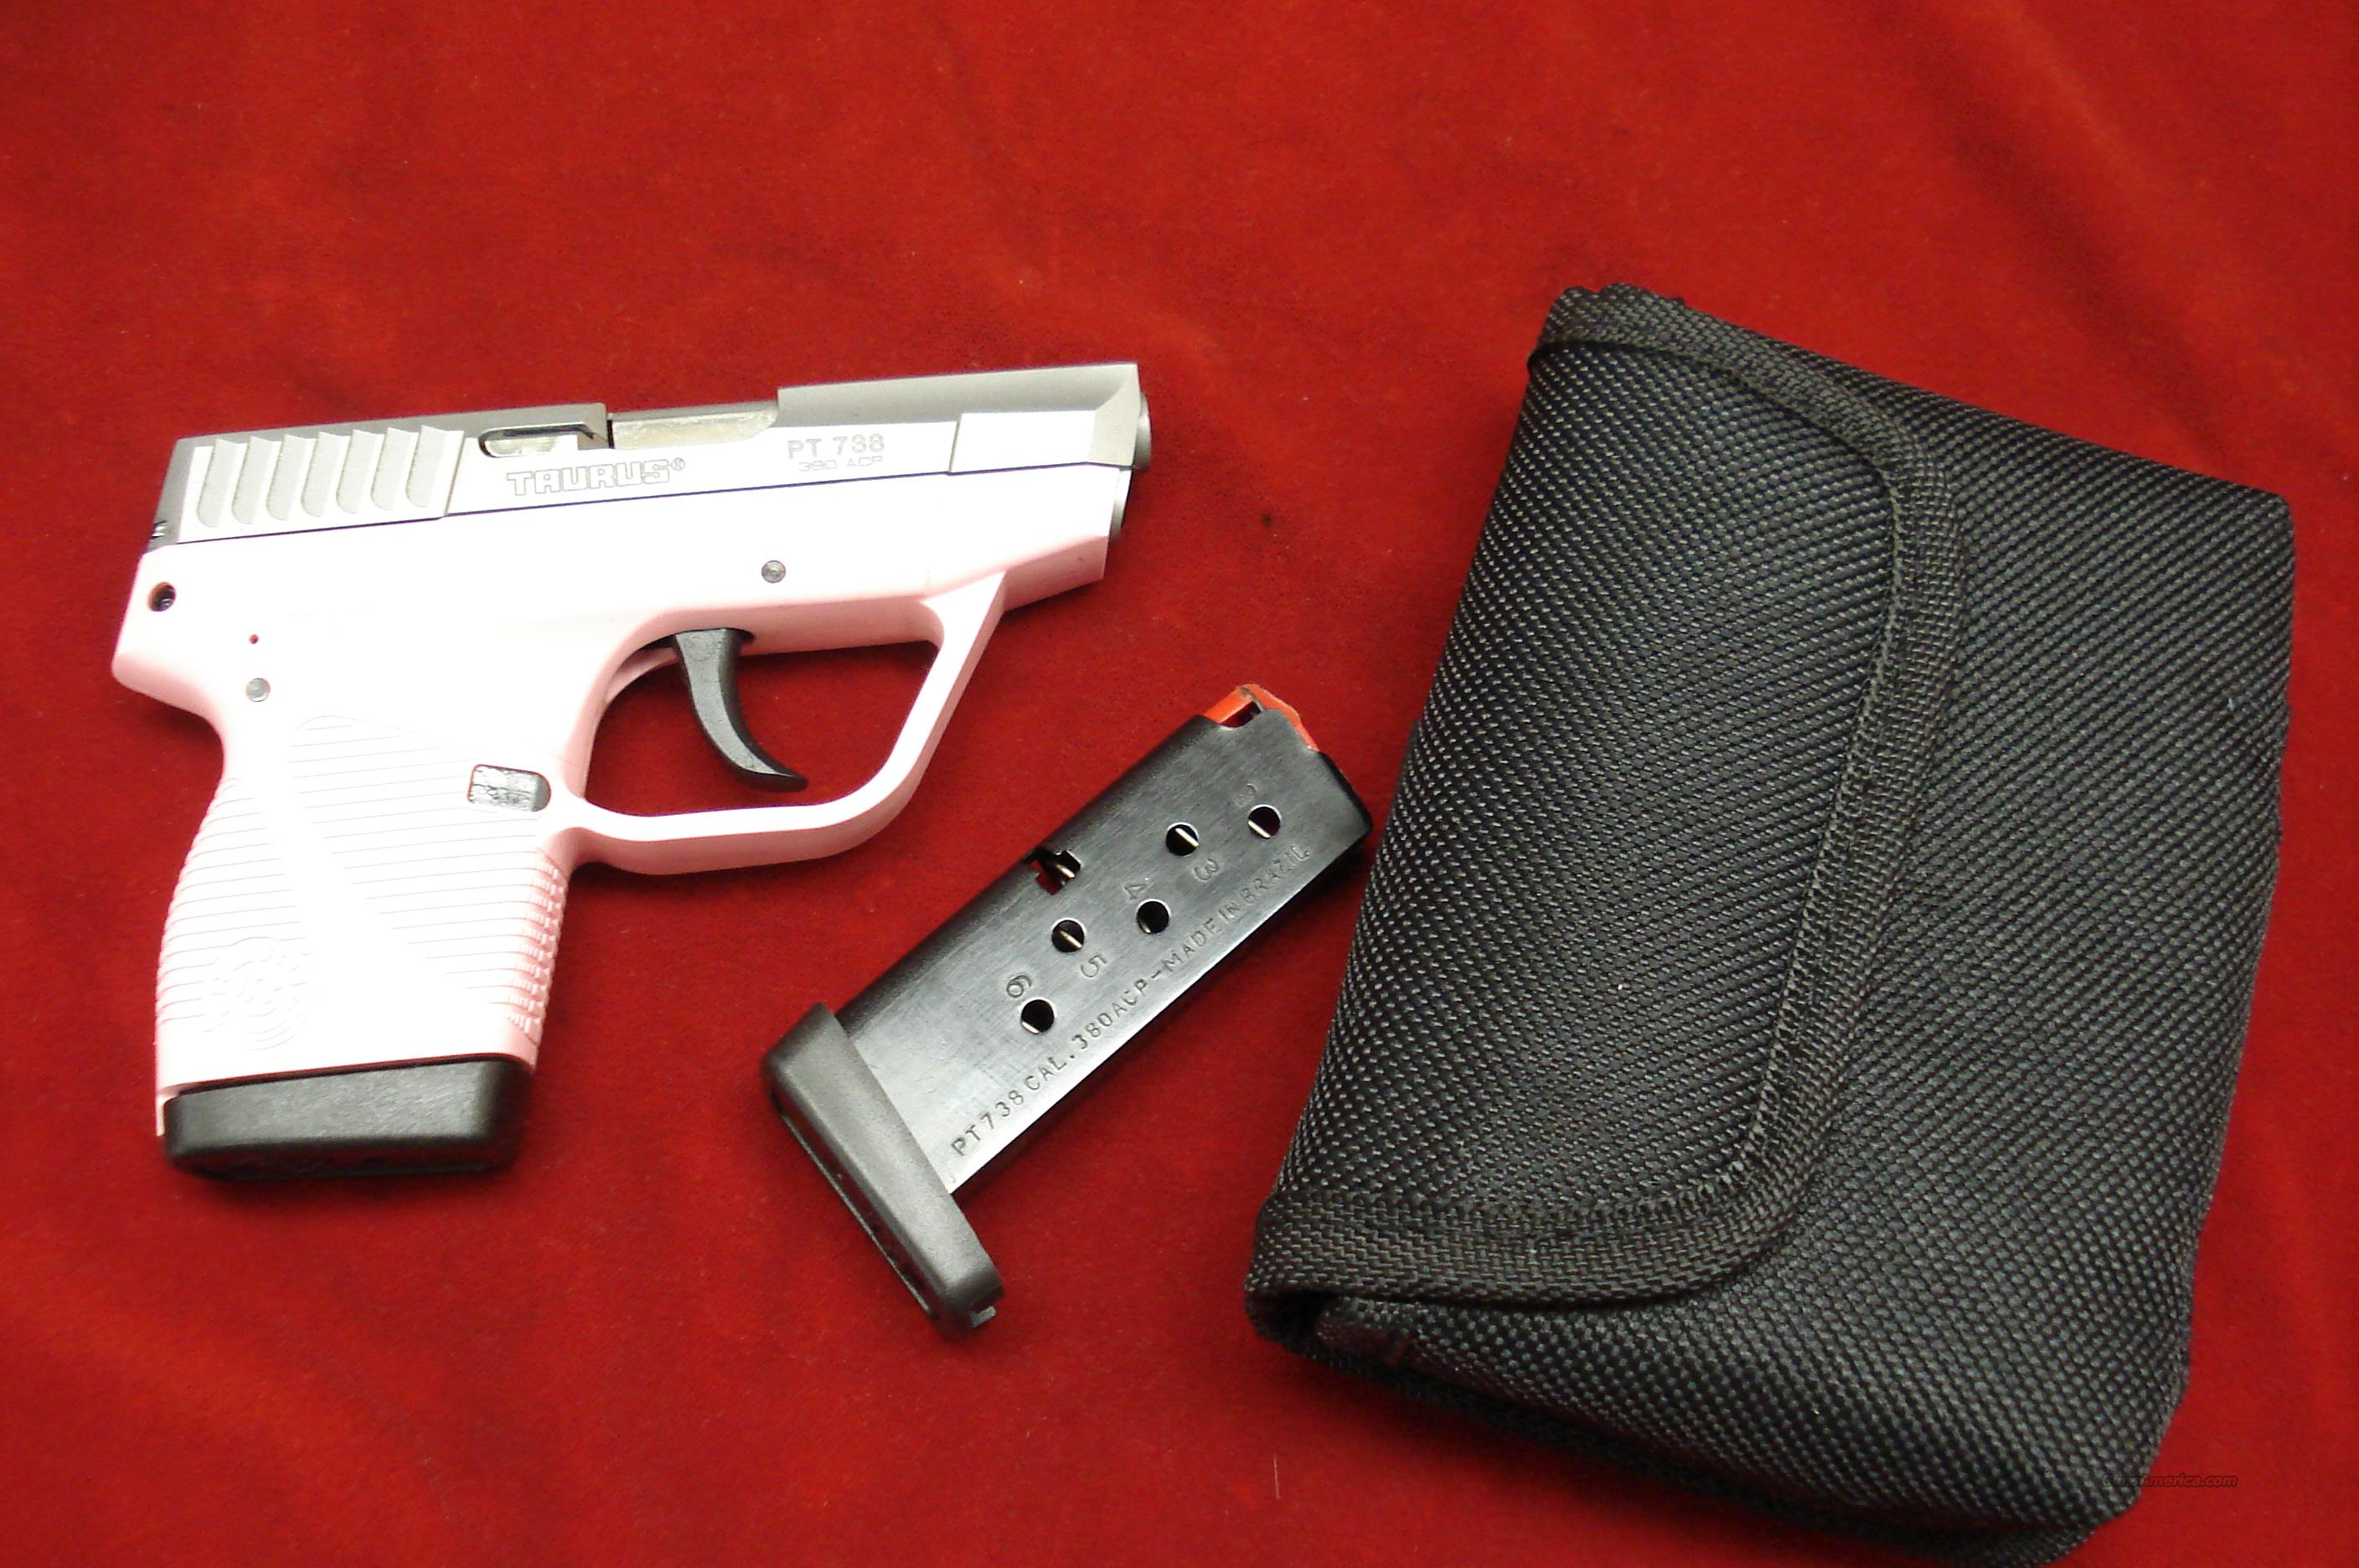 TAURUS PT738 TCP PINK/STAINLESS 380 CAL. NEW   Guns > Pistols > Taurus Pistols/Revolvers > Pistols > Polymer Frame